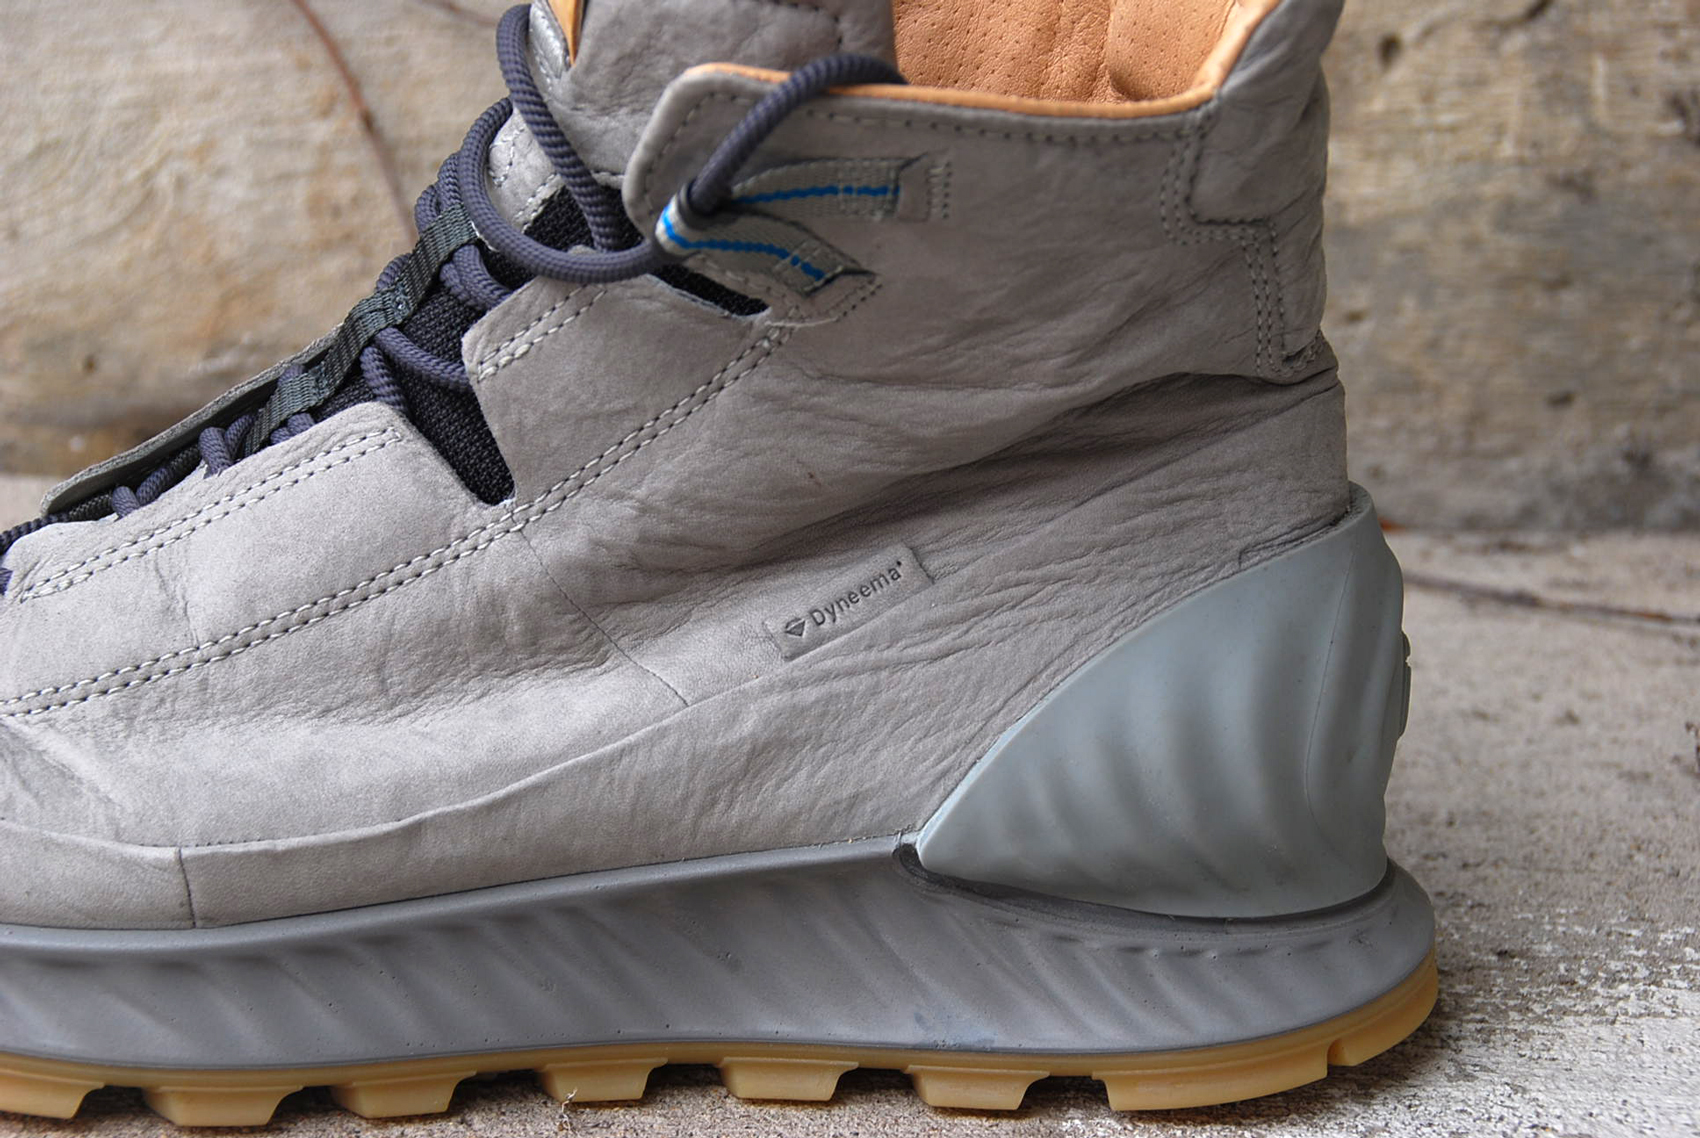 6641286c0056 Strongest Boot Ever  Dyneema Leather EXOSTRIKE First Look